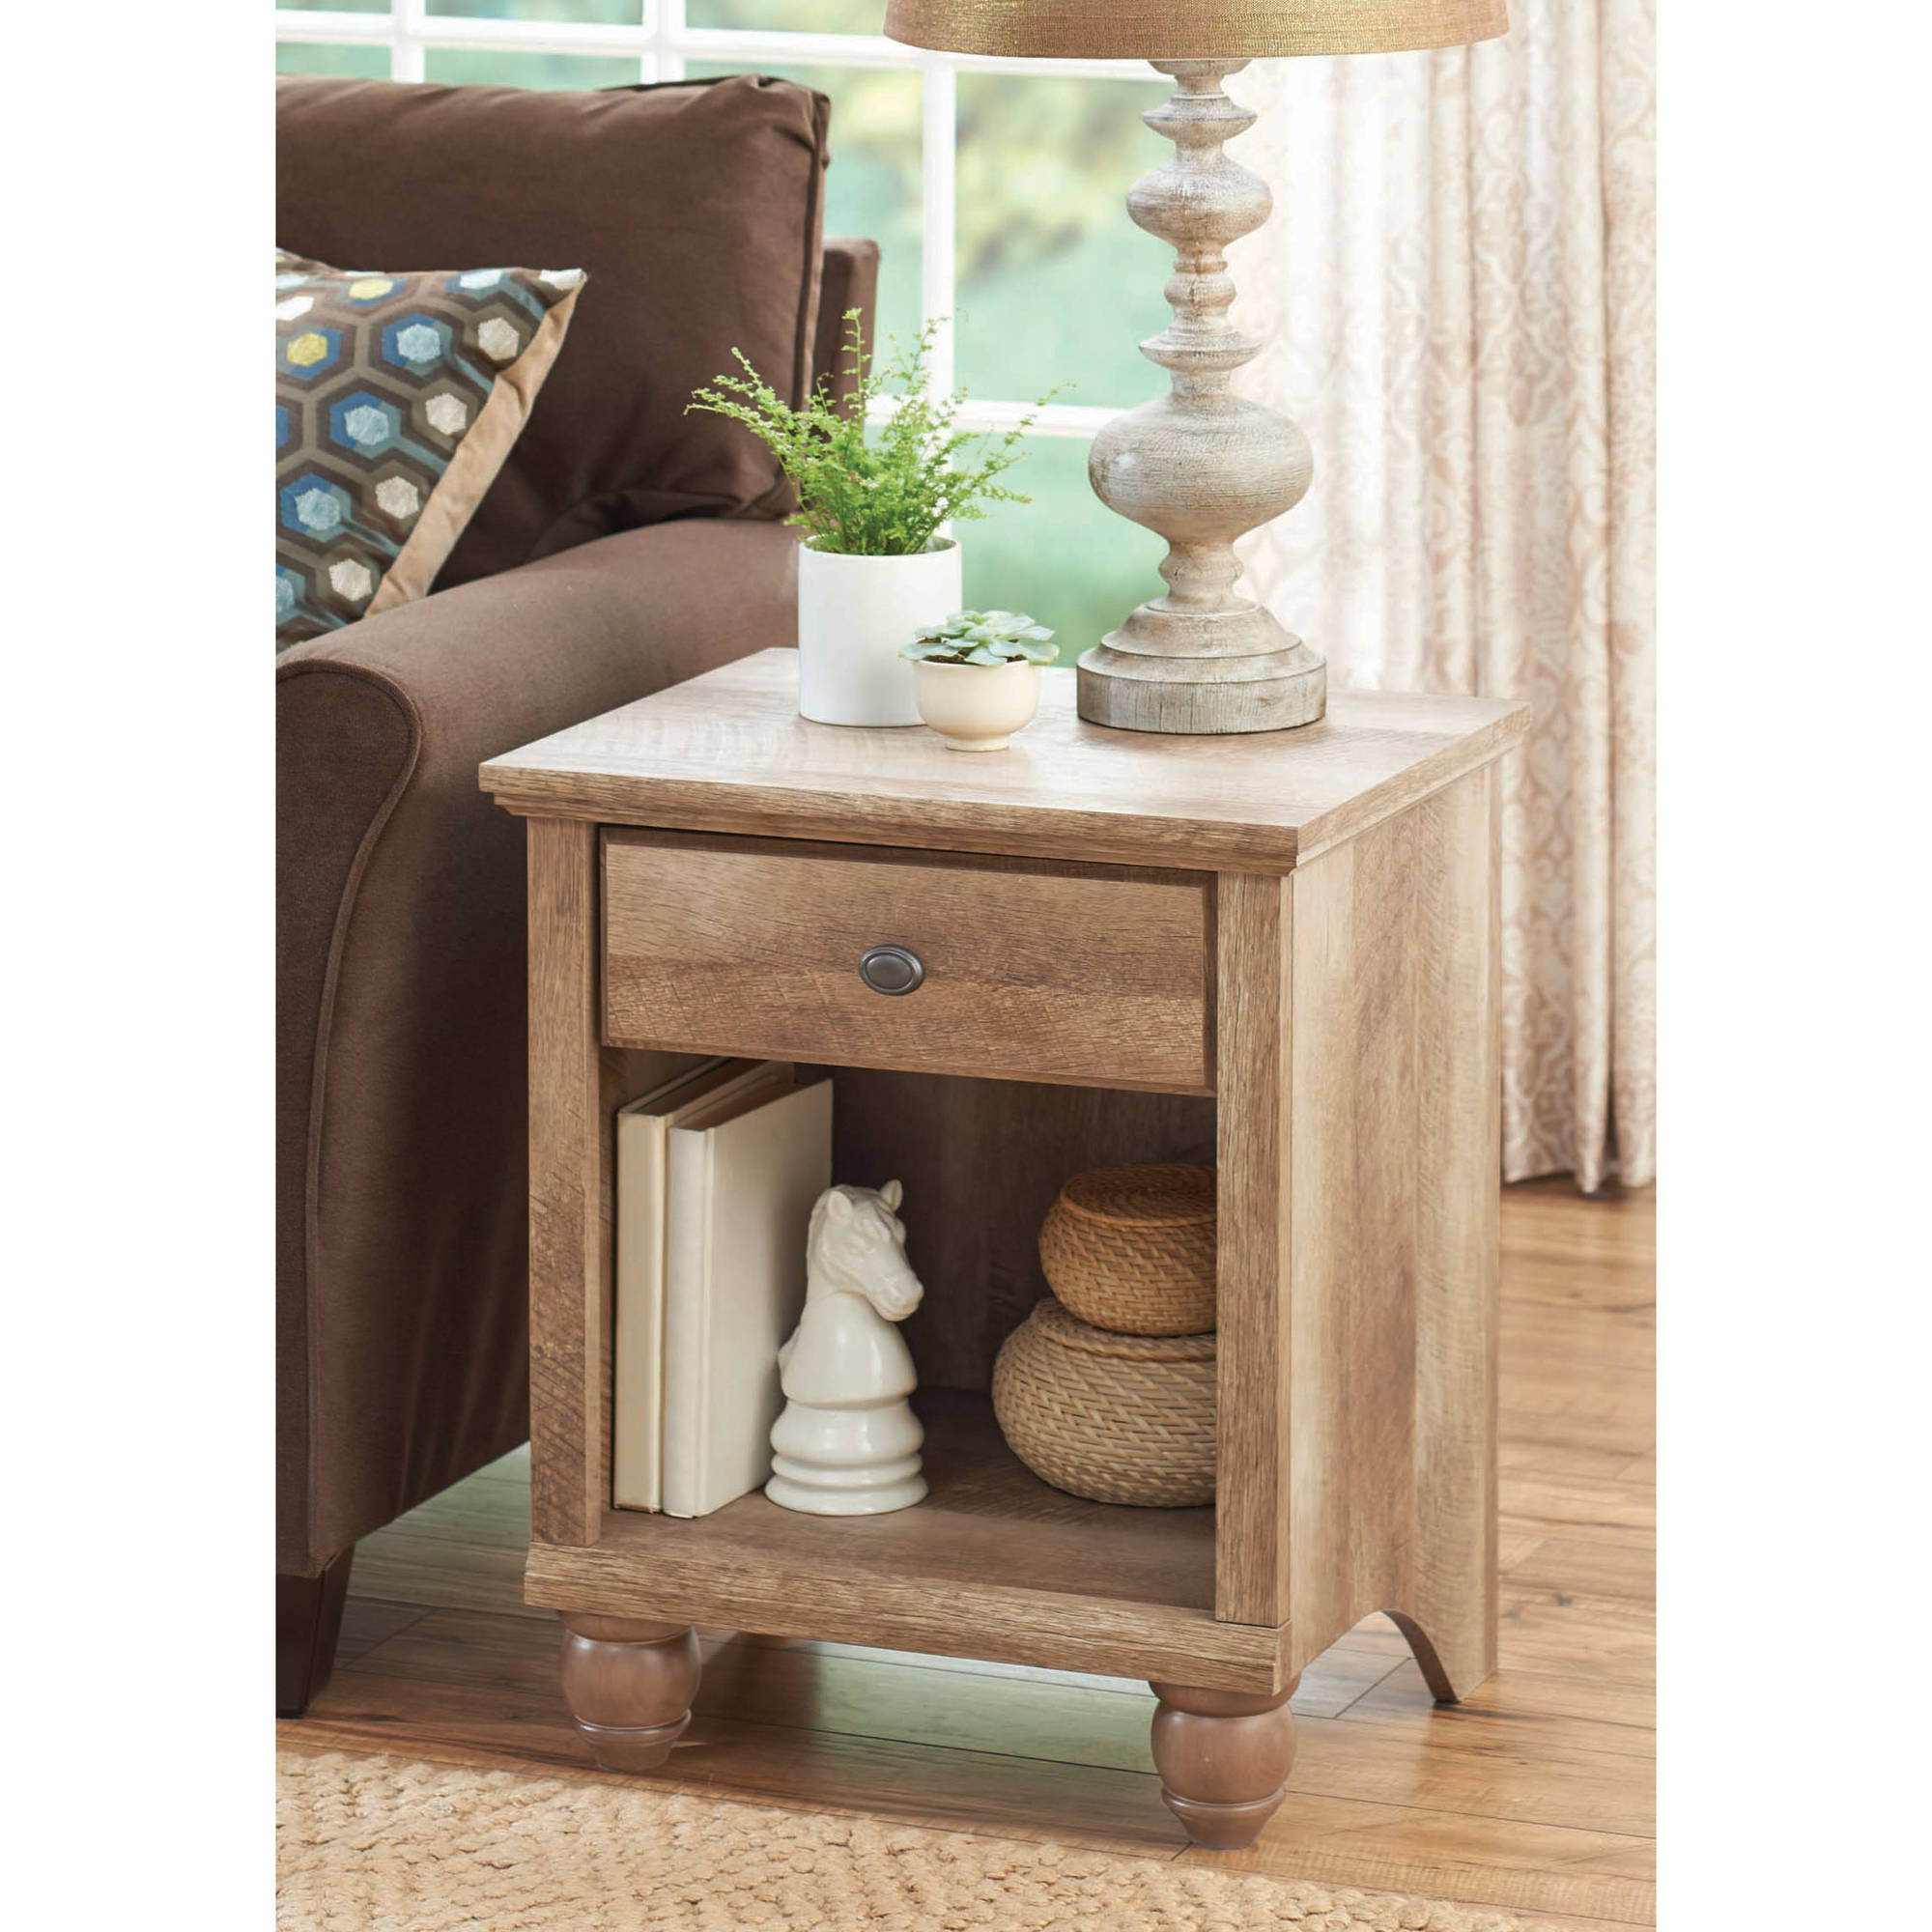 better homes gardens crossmill accent table weathered finish storage black room essentials mouse wired mosaic coffee wide carpet transition strip tro lamps counter height with